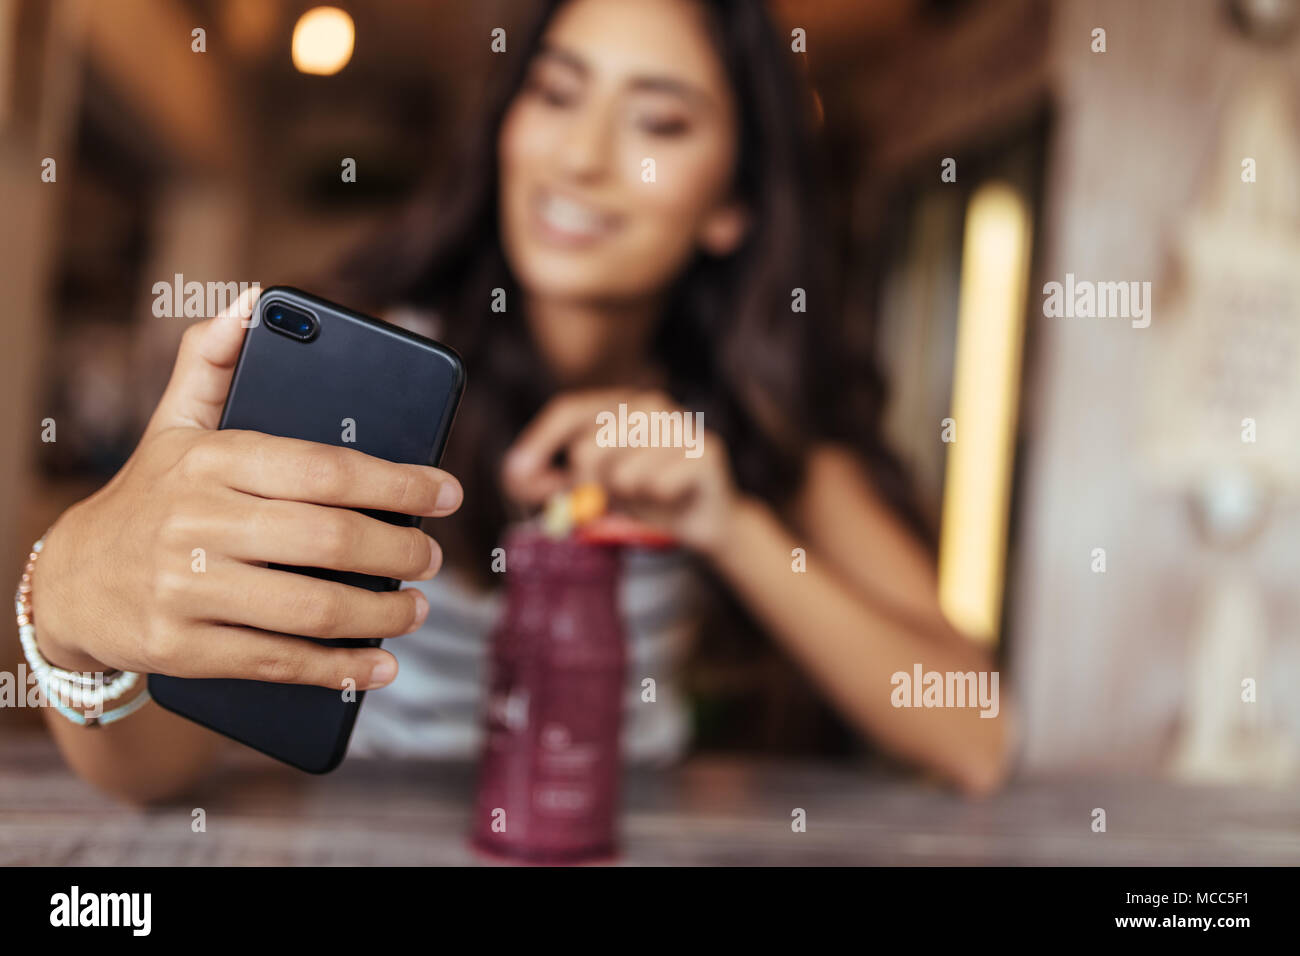 Woman taking a selfie with a smoothie placed on the table using a mobile phone for her food blog. Food blogger shooting photos for her blog at home. - Stock Image